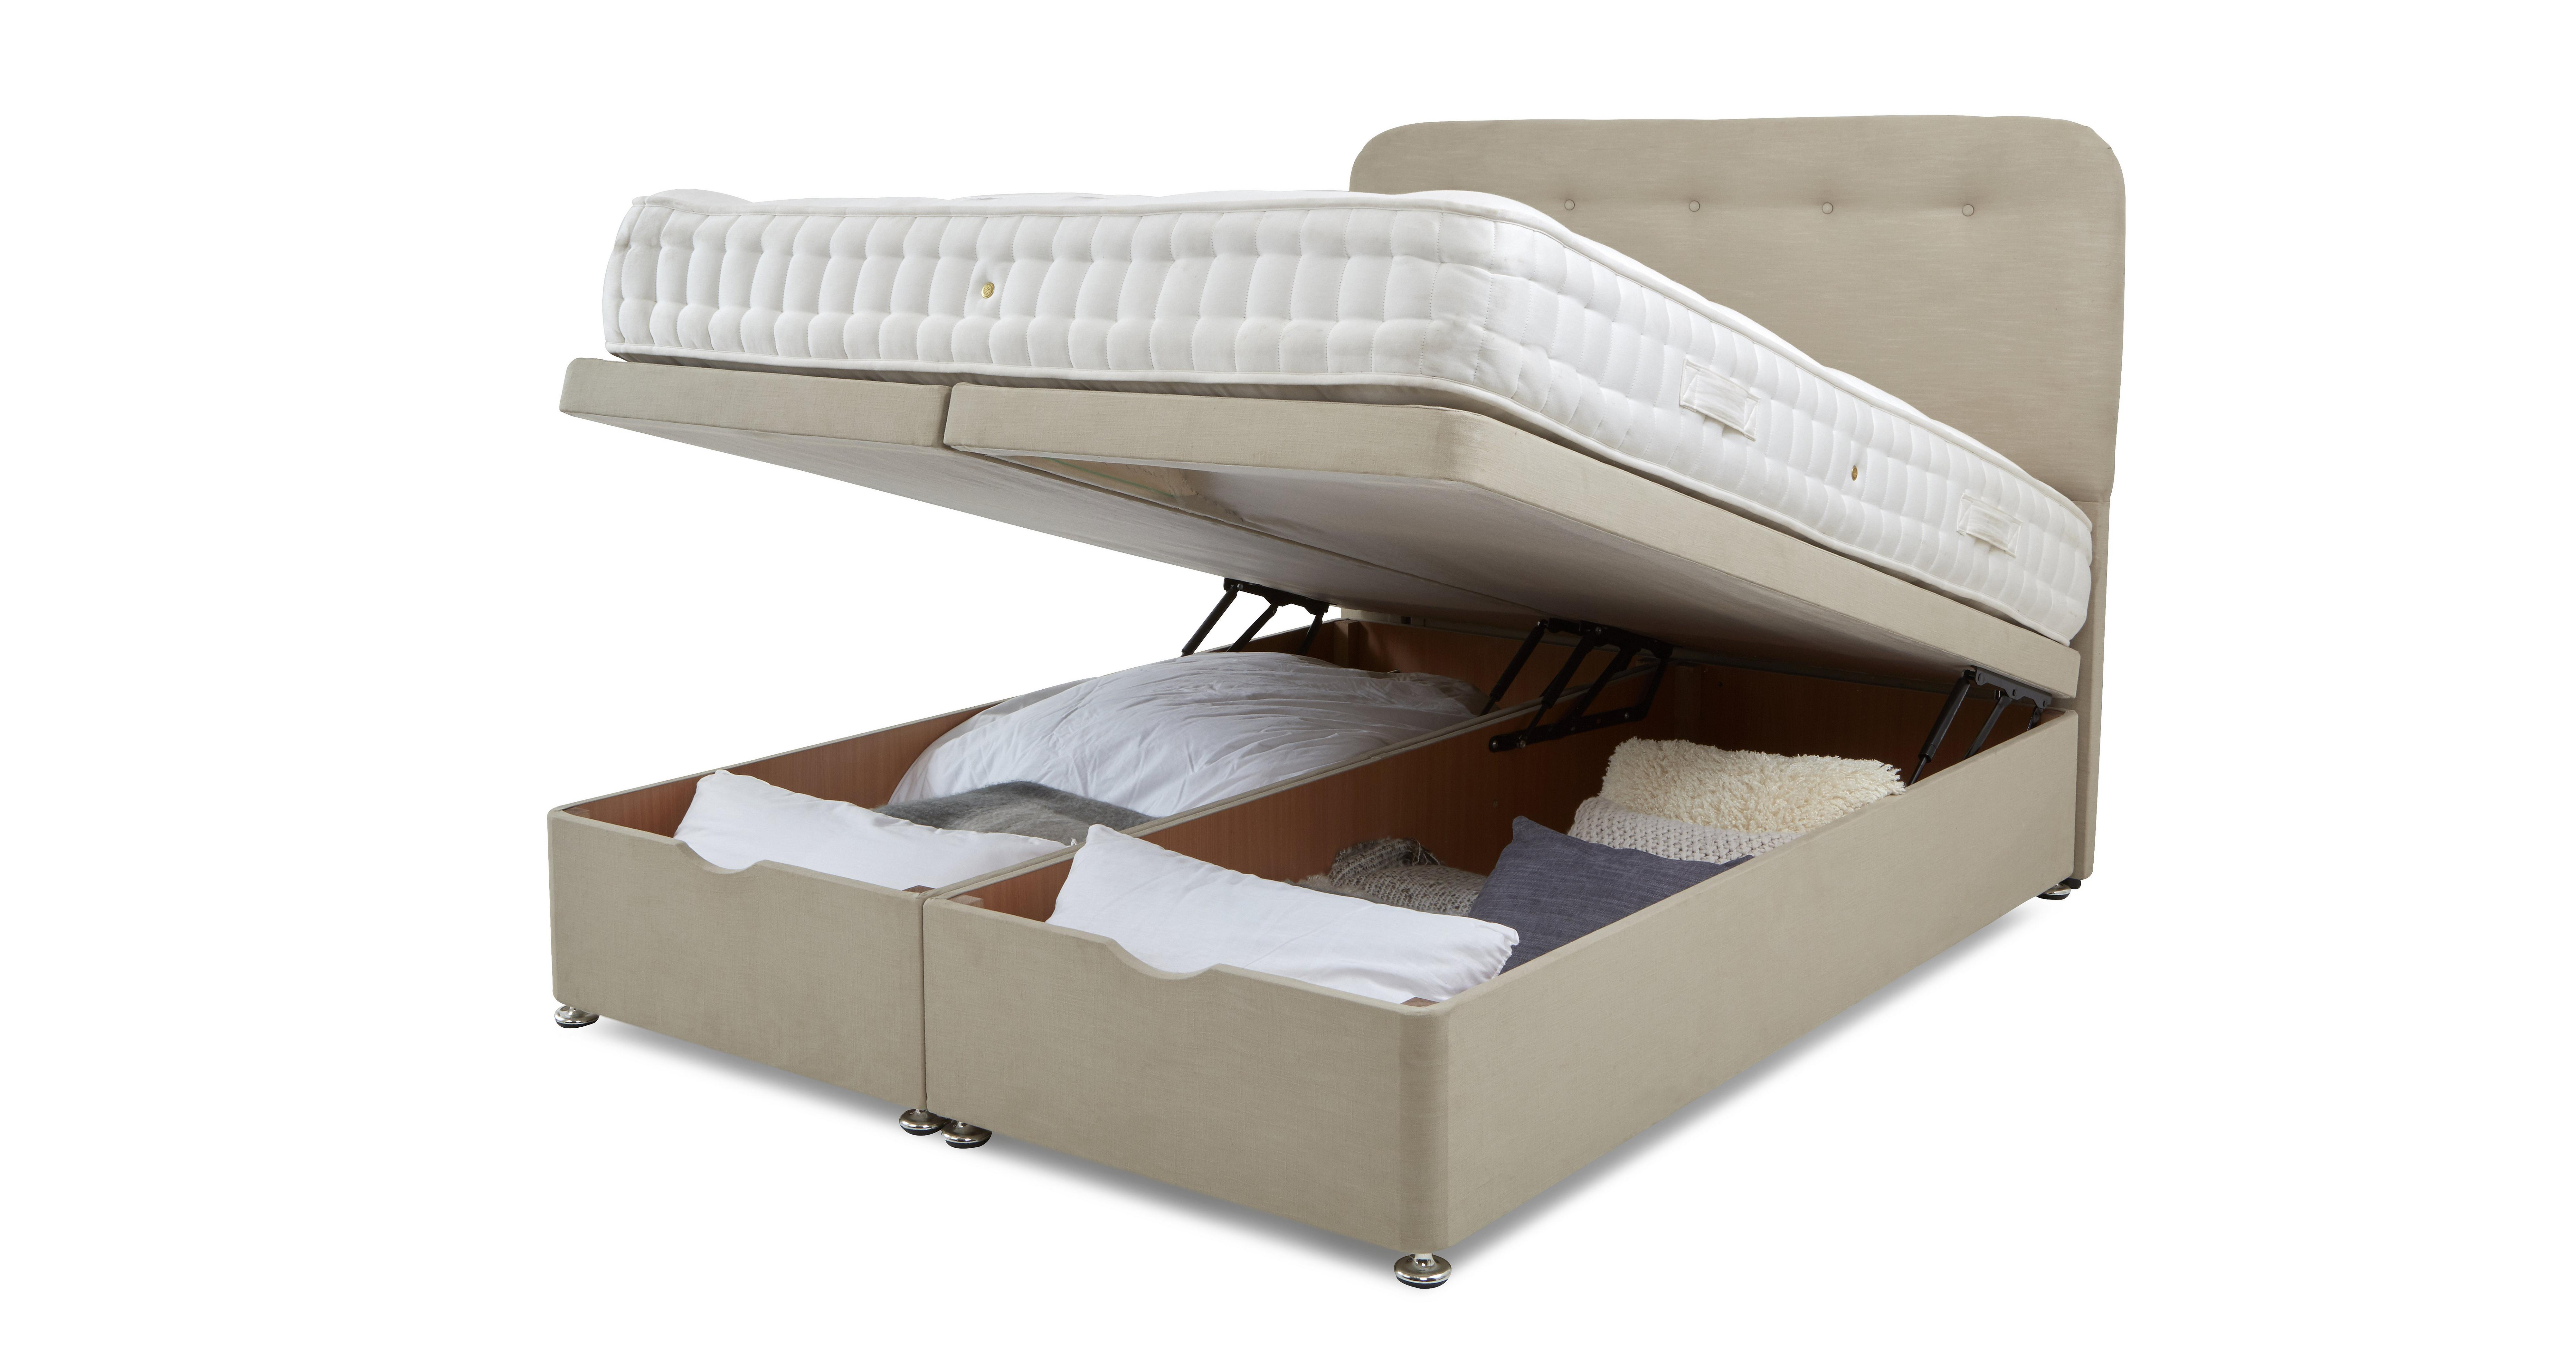 dream accent single ottoman beds open choice huge at lr makers bed sweet sweetdreammakers frames from